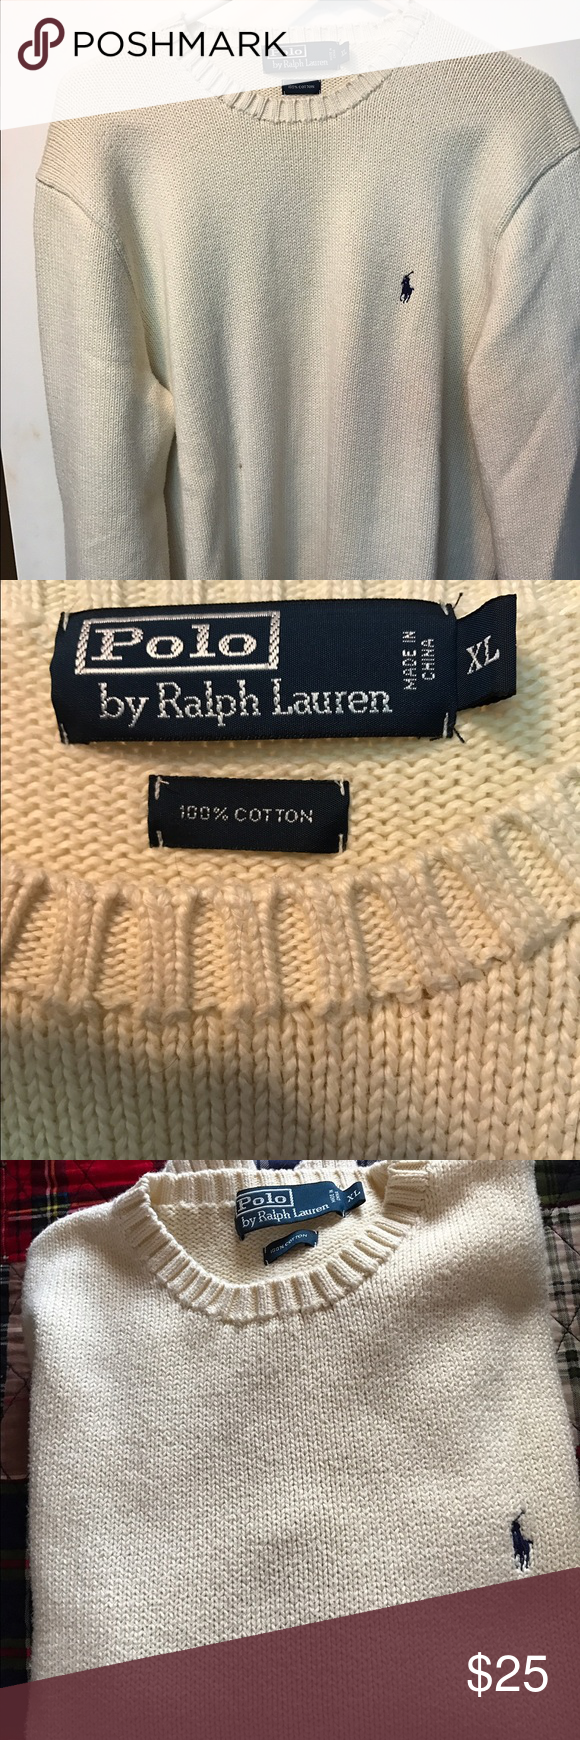 Polo By Ralph Lauren 100% Heavy Cotton Sweater Polo By Ralph ...